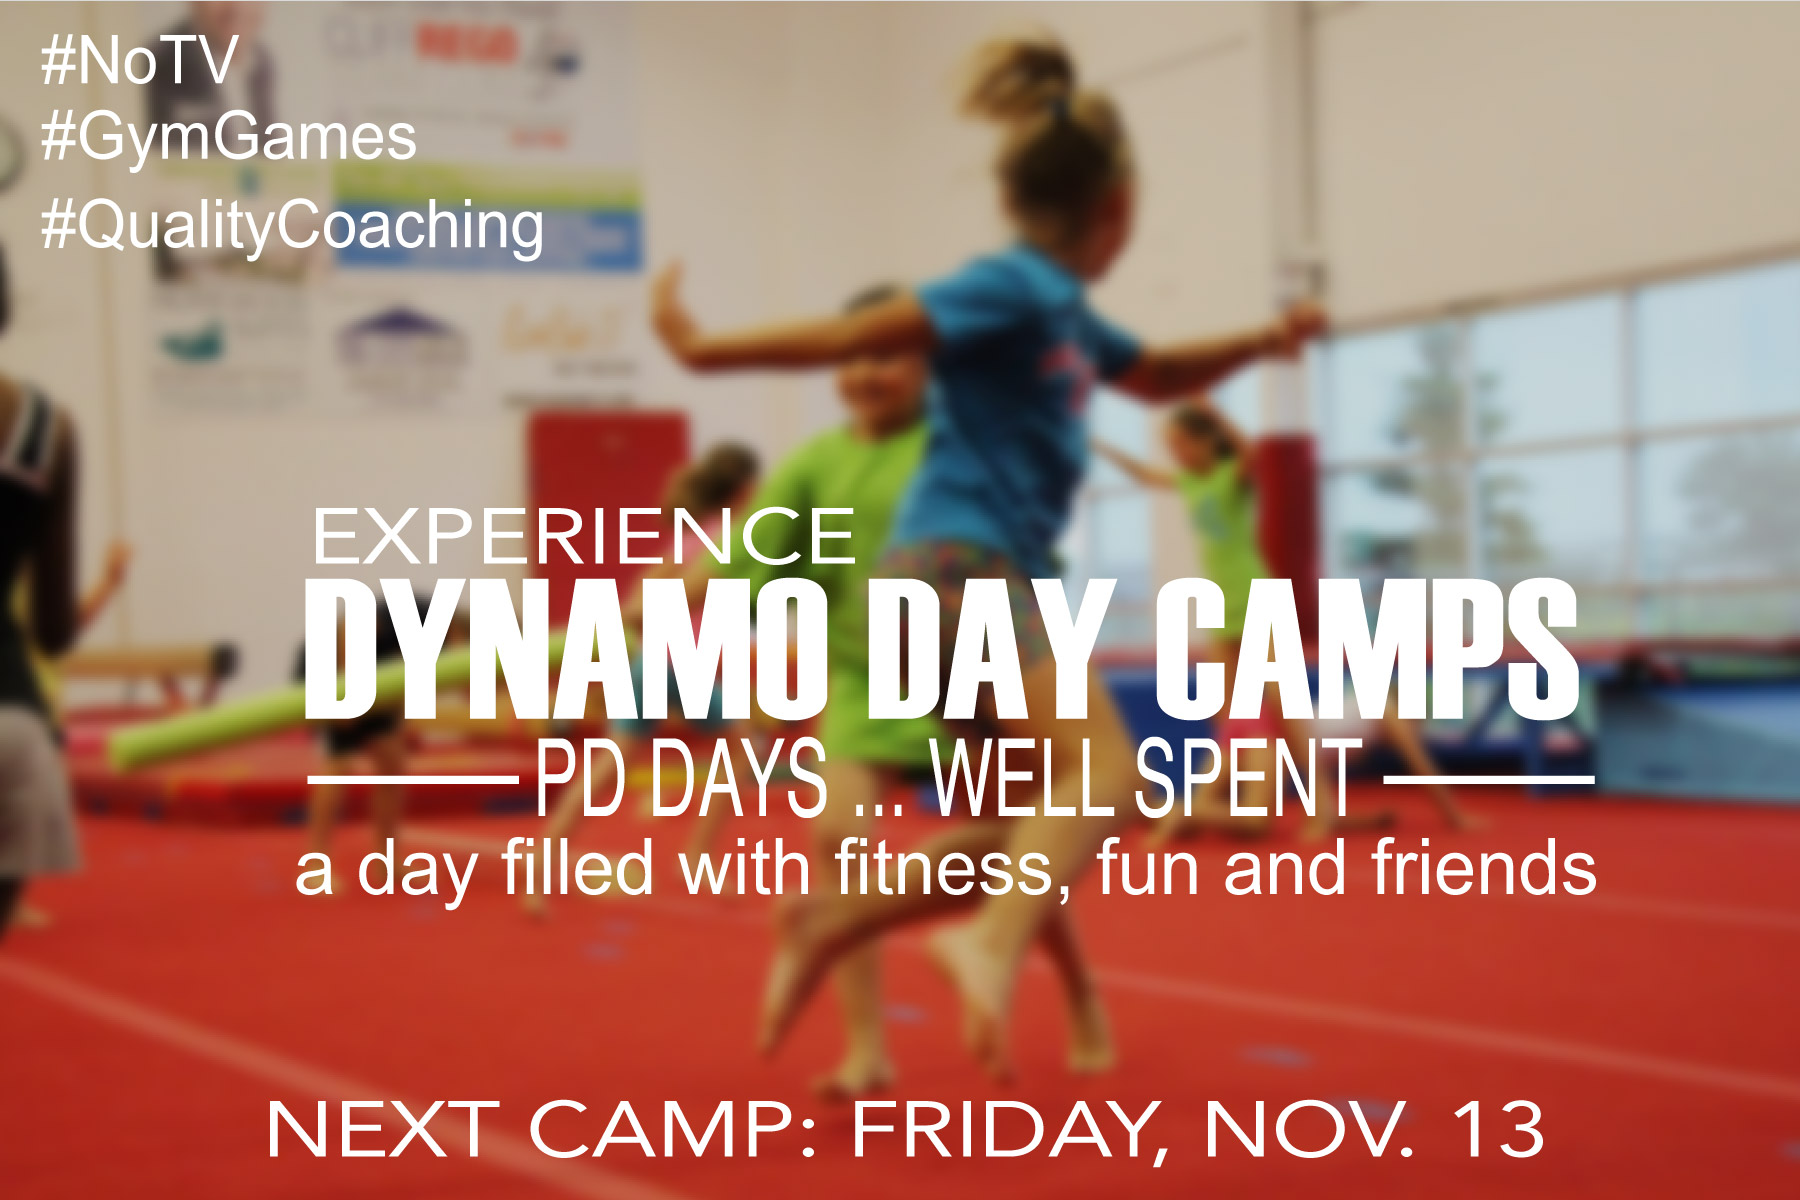 PD DAY CAMP AD